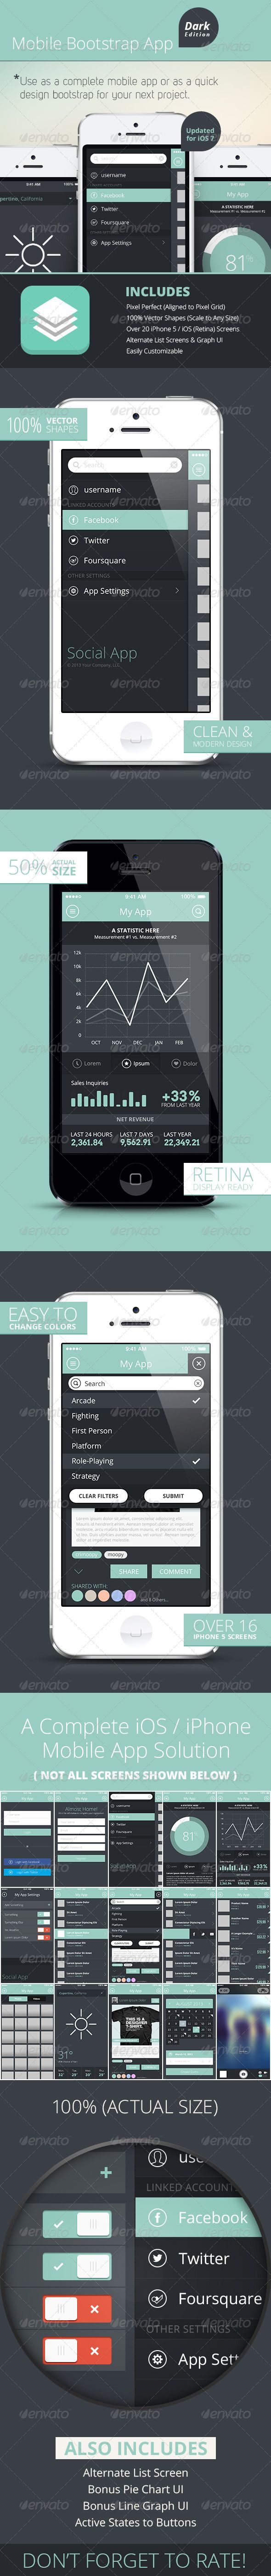 Bootstrap Mobile Phone - UI - iPhone iOS